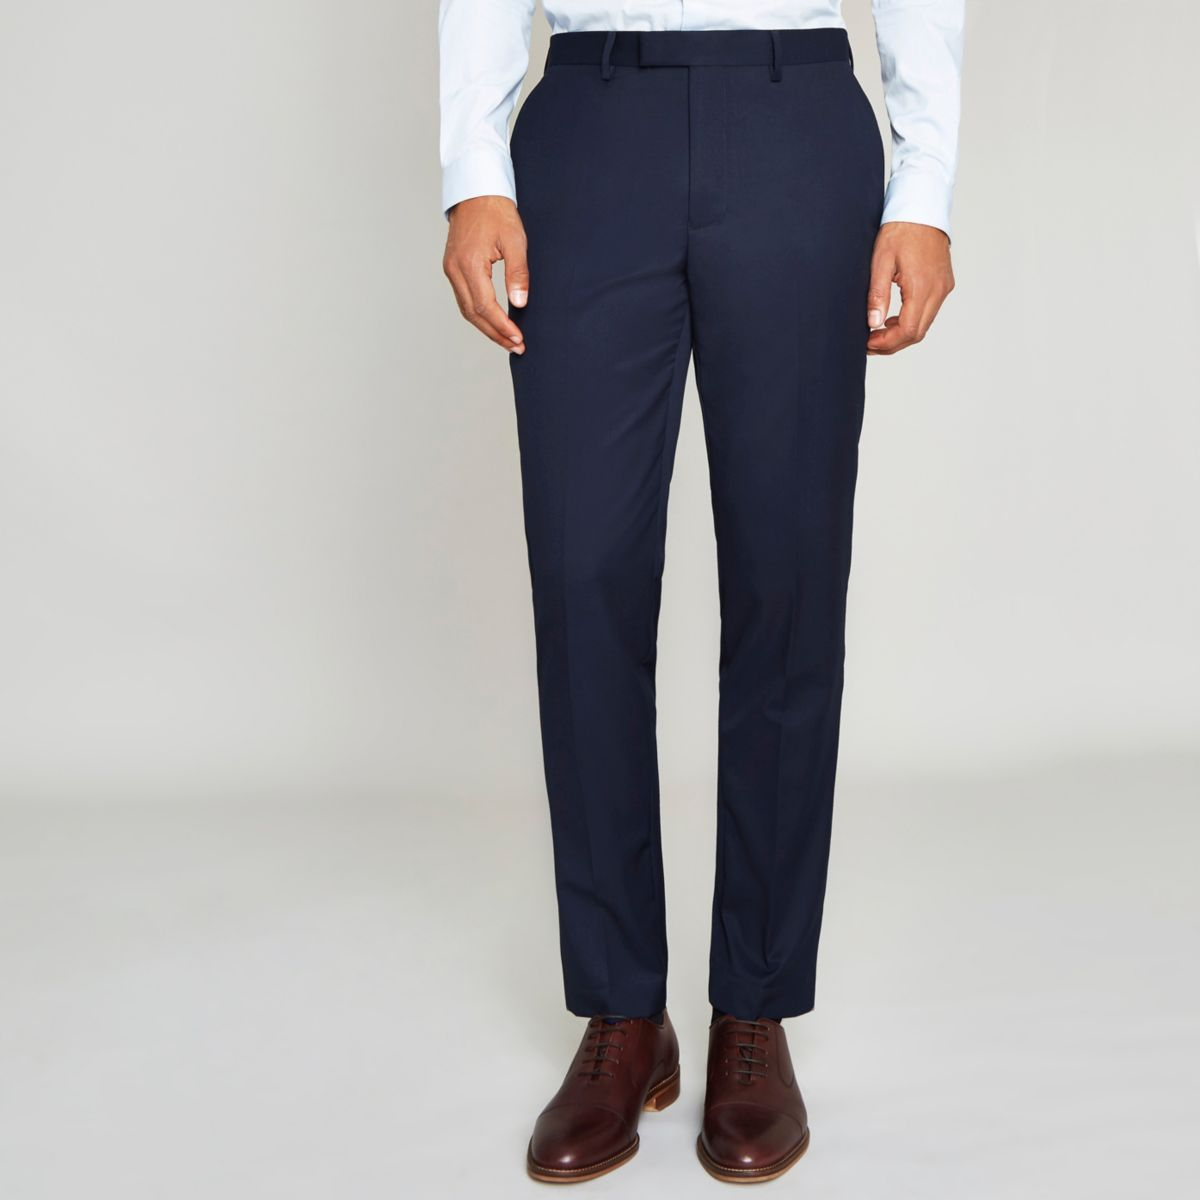 Navy blue slim fit suit pants